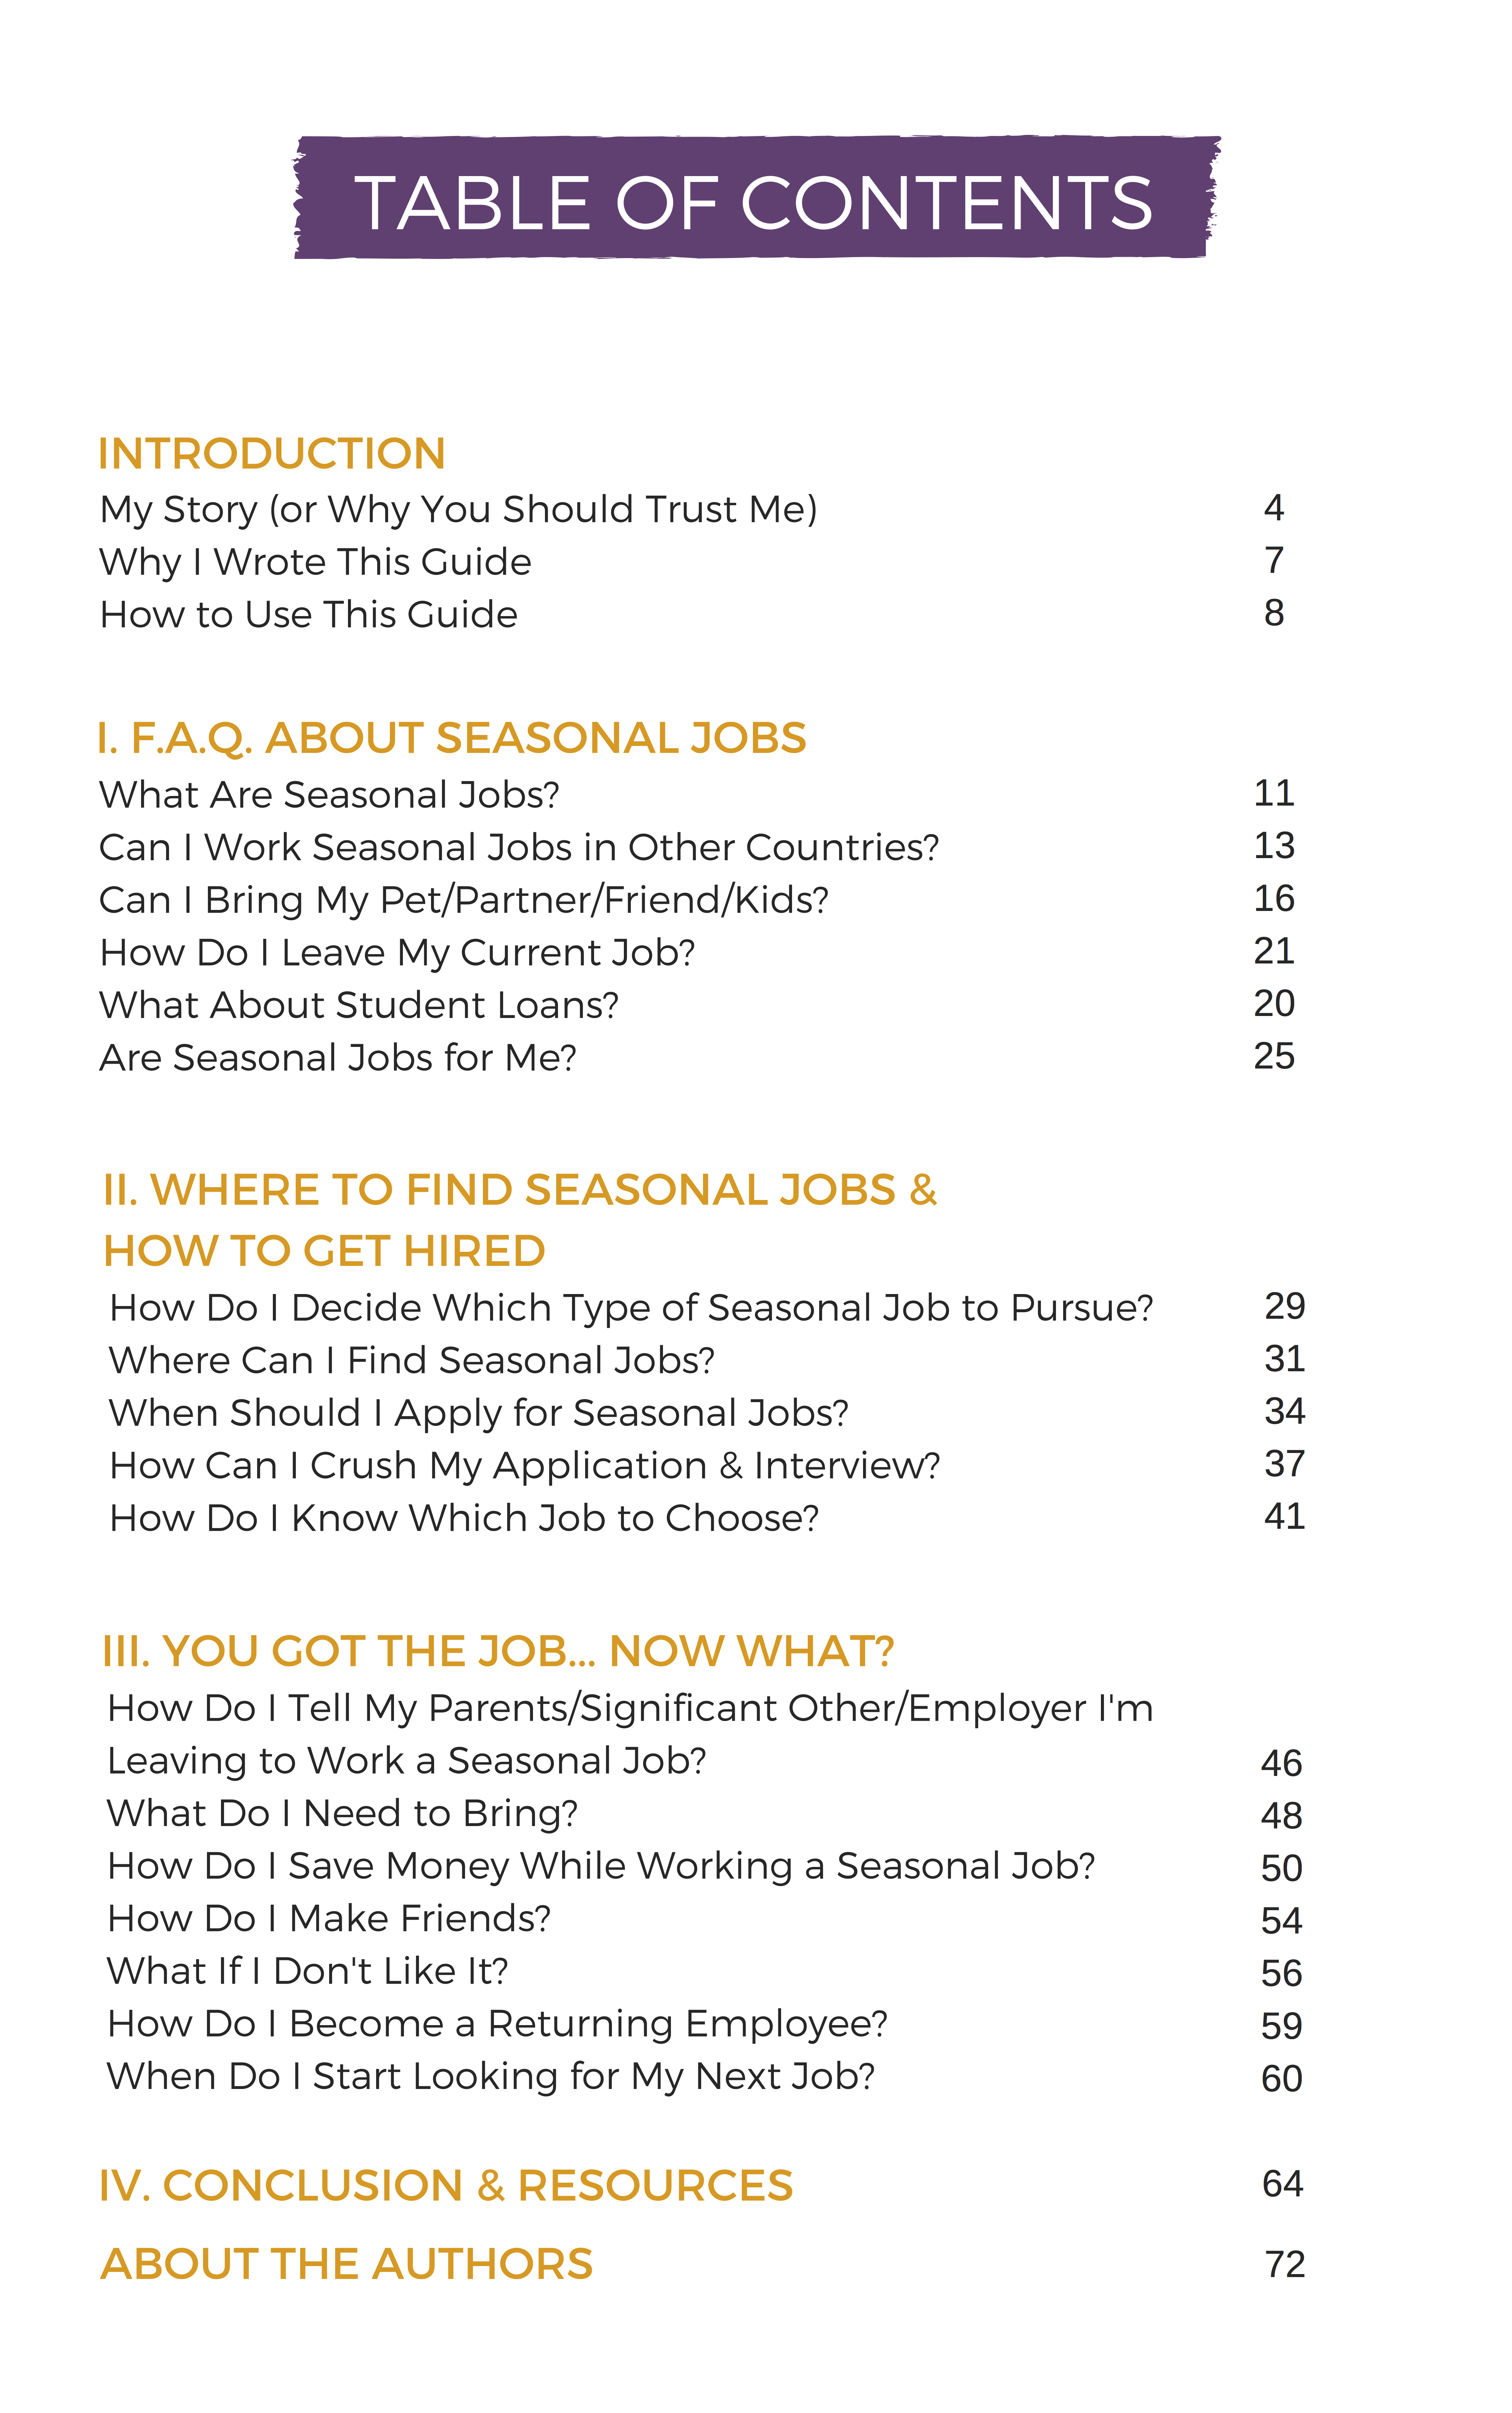 worksheet Trail Of Tears Worksheet the ultimate guide to seasonal jobs coolworks com the